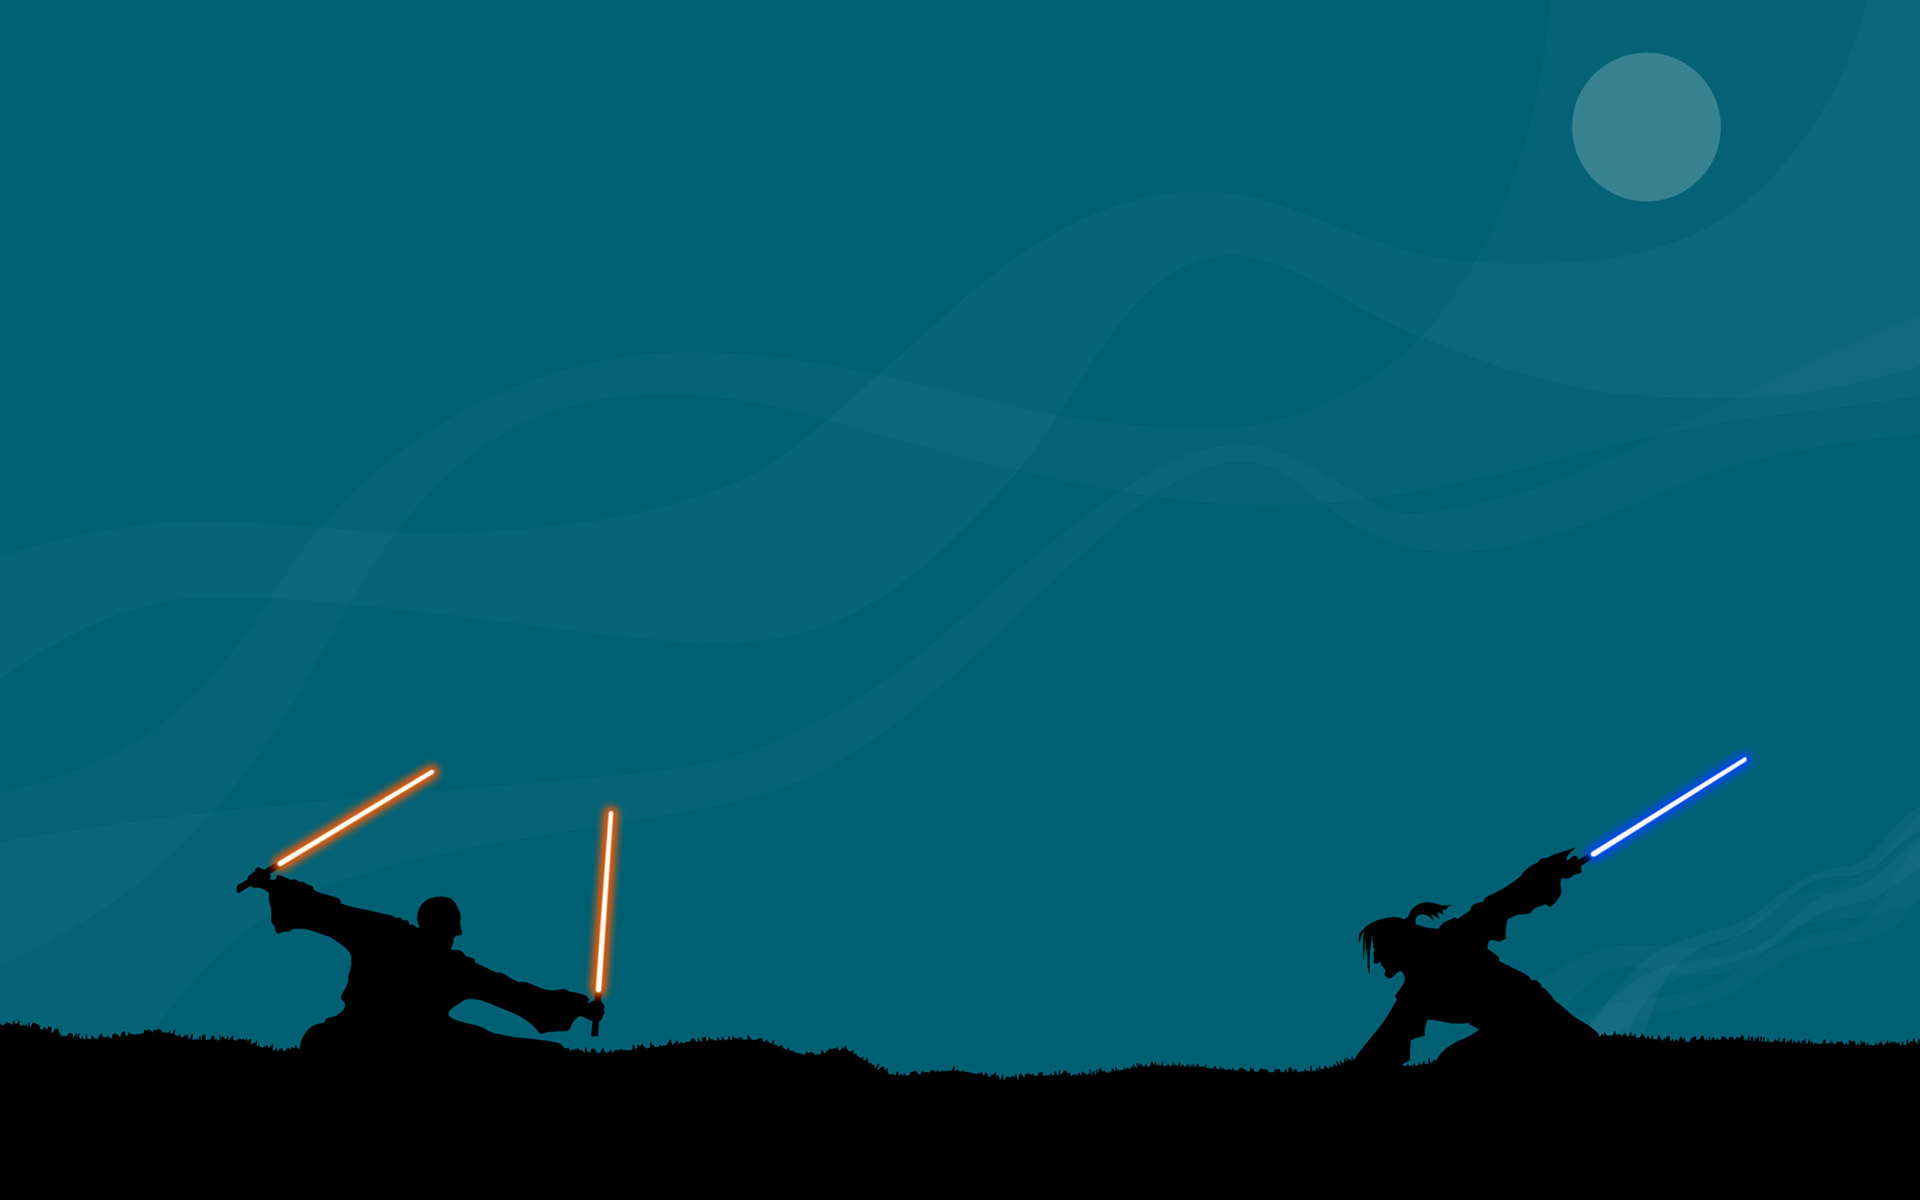 Graphics Vector Star Game Wars